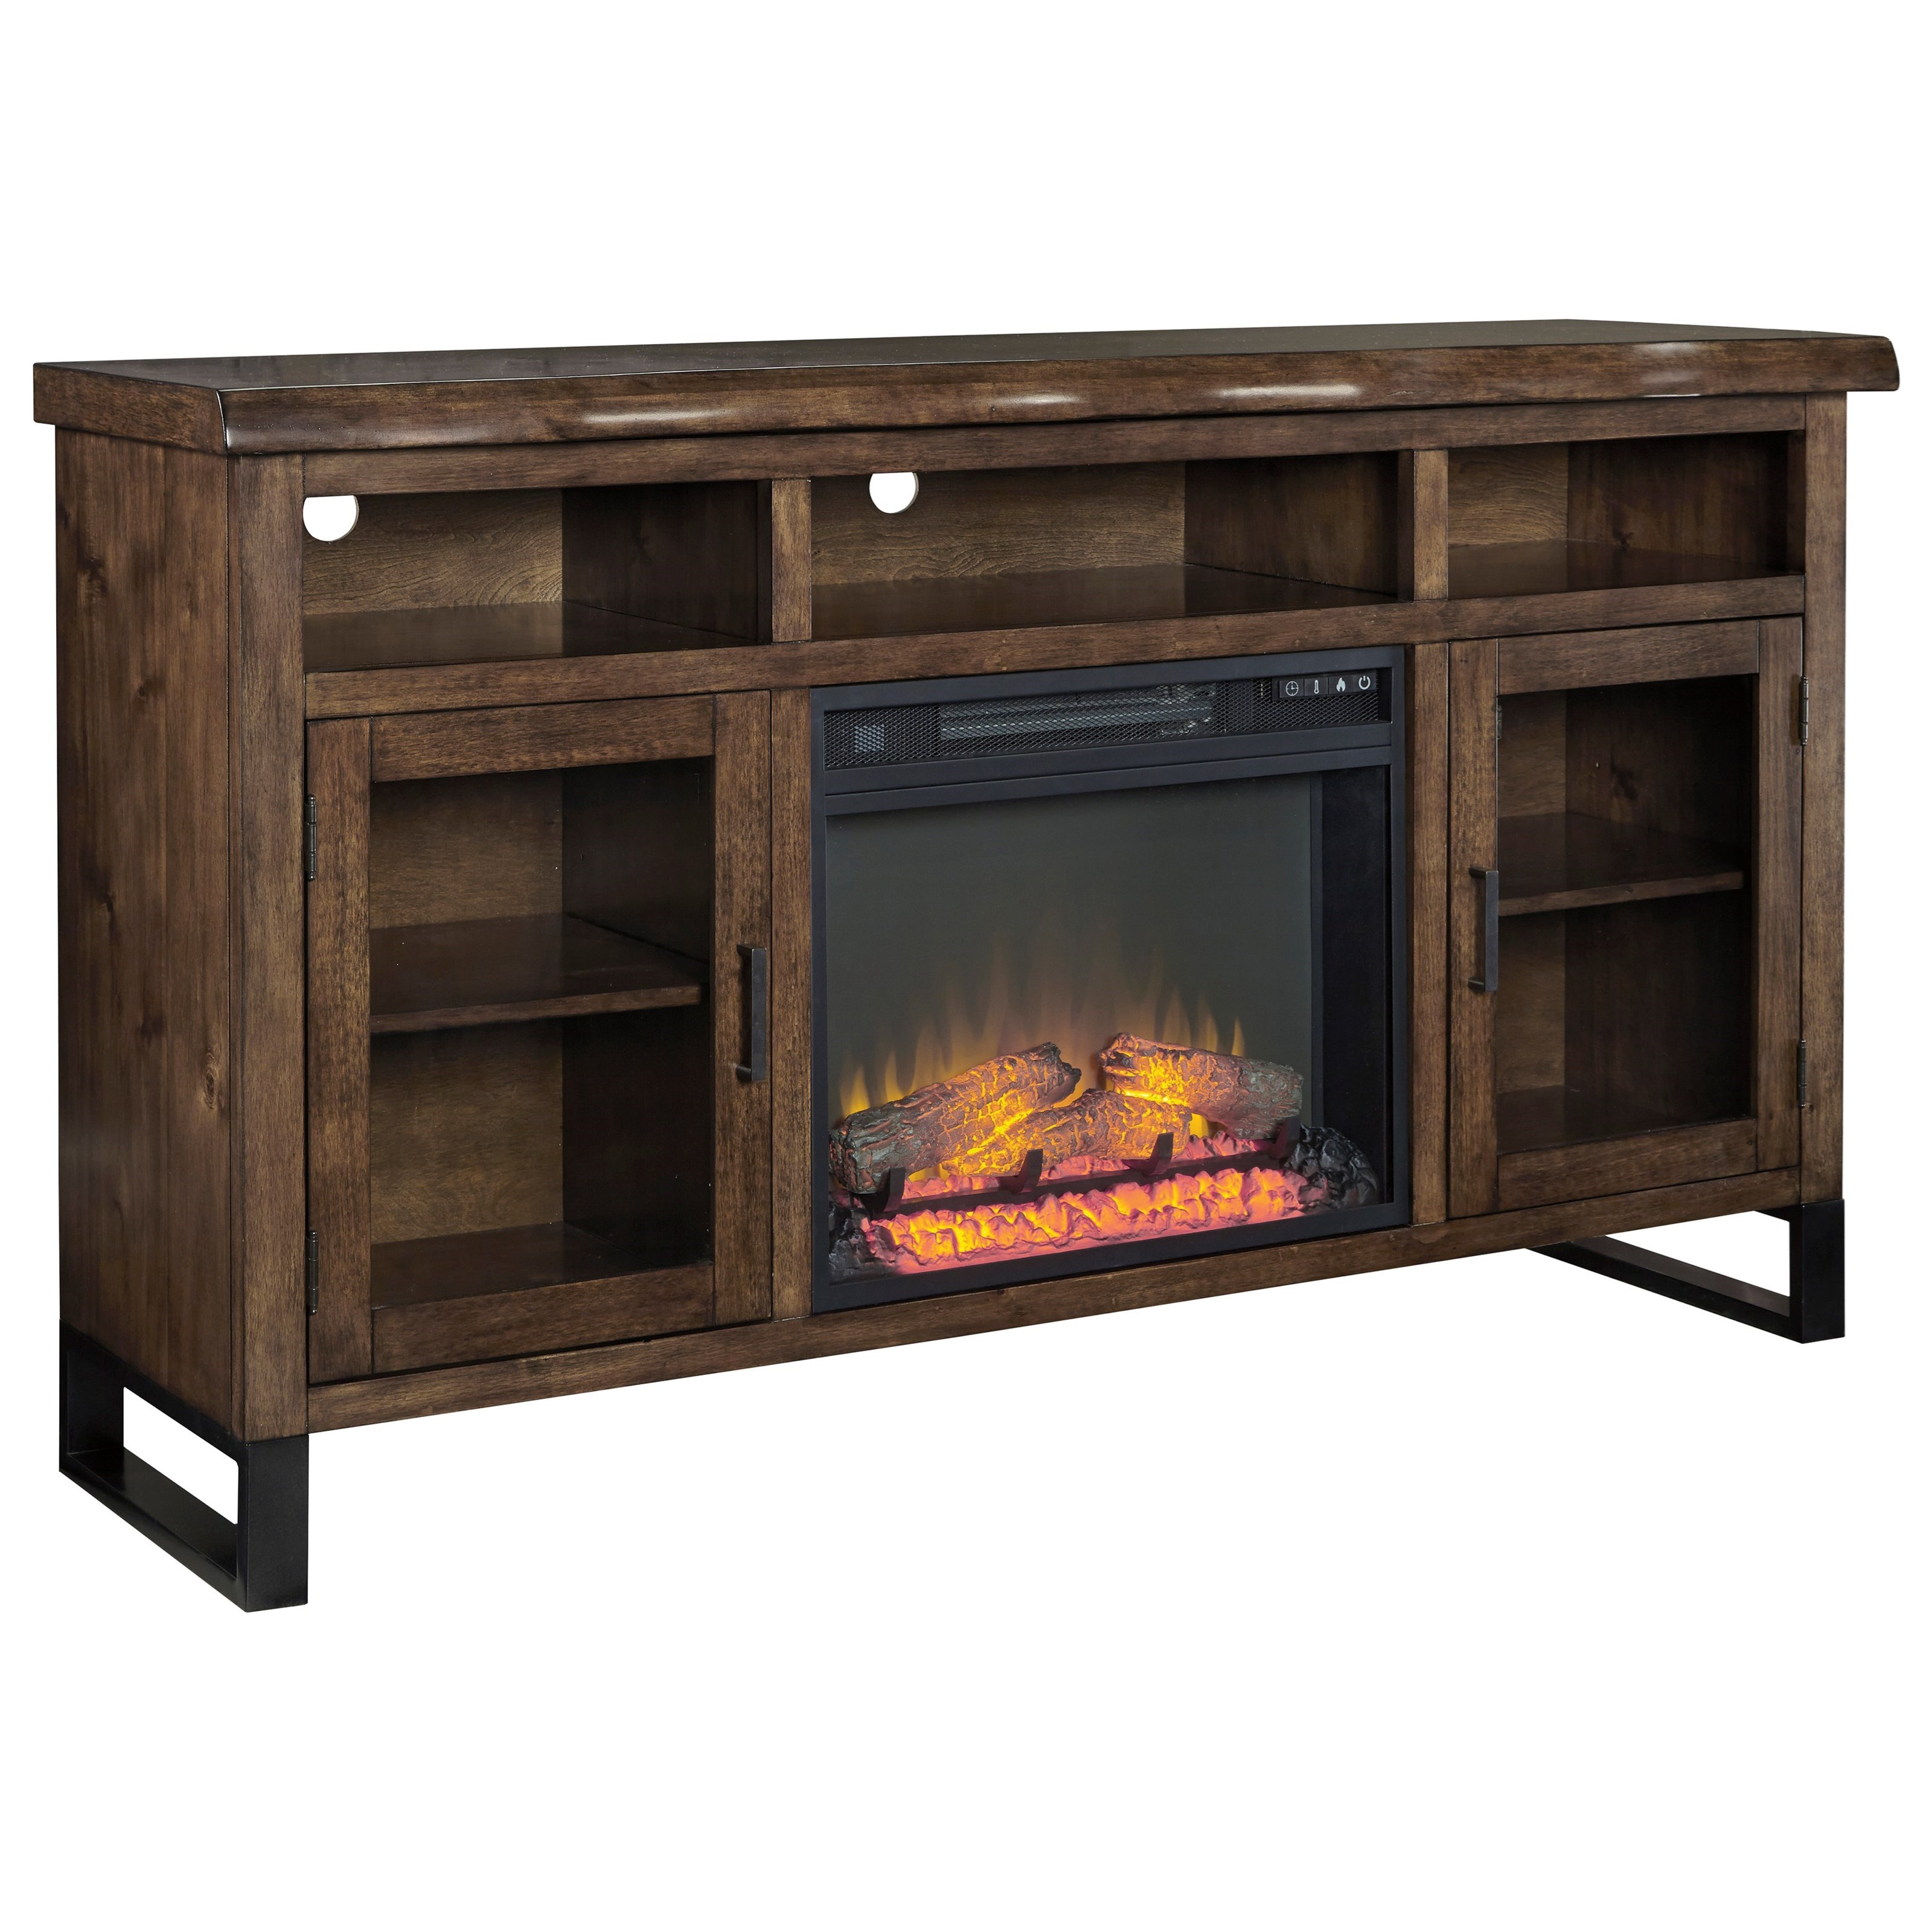 Signature Design by Ashley Esmarina Large TV Stand w/ Fireplace Insert - Item Number: W815-48+W100-01